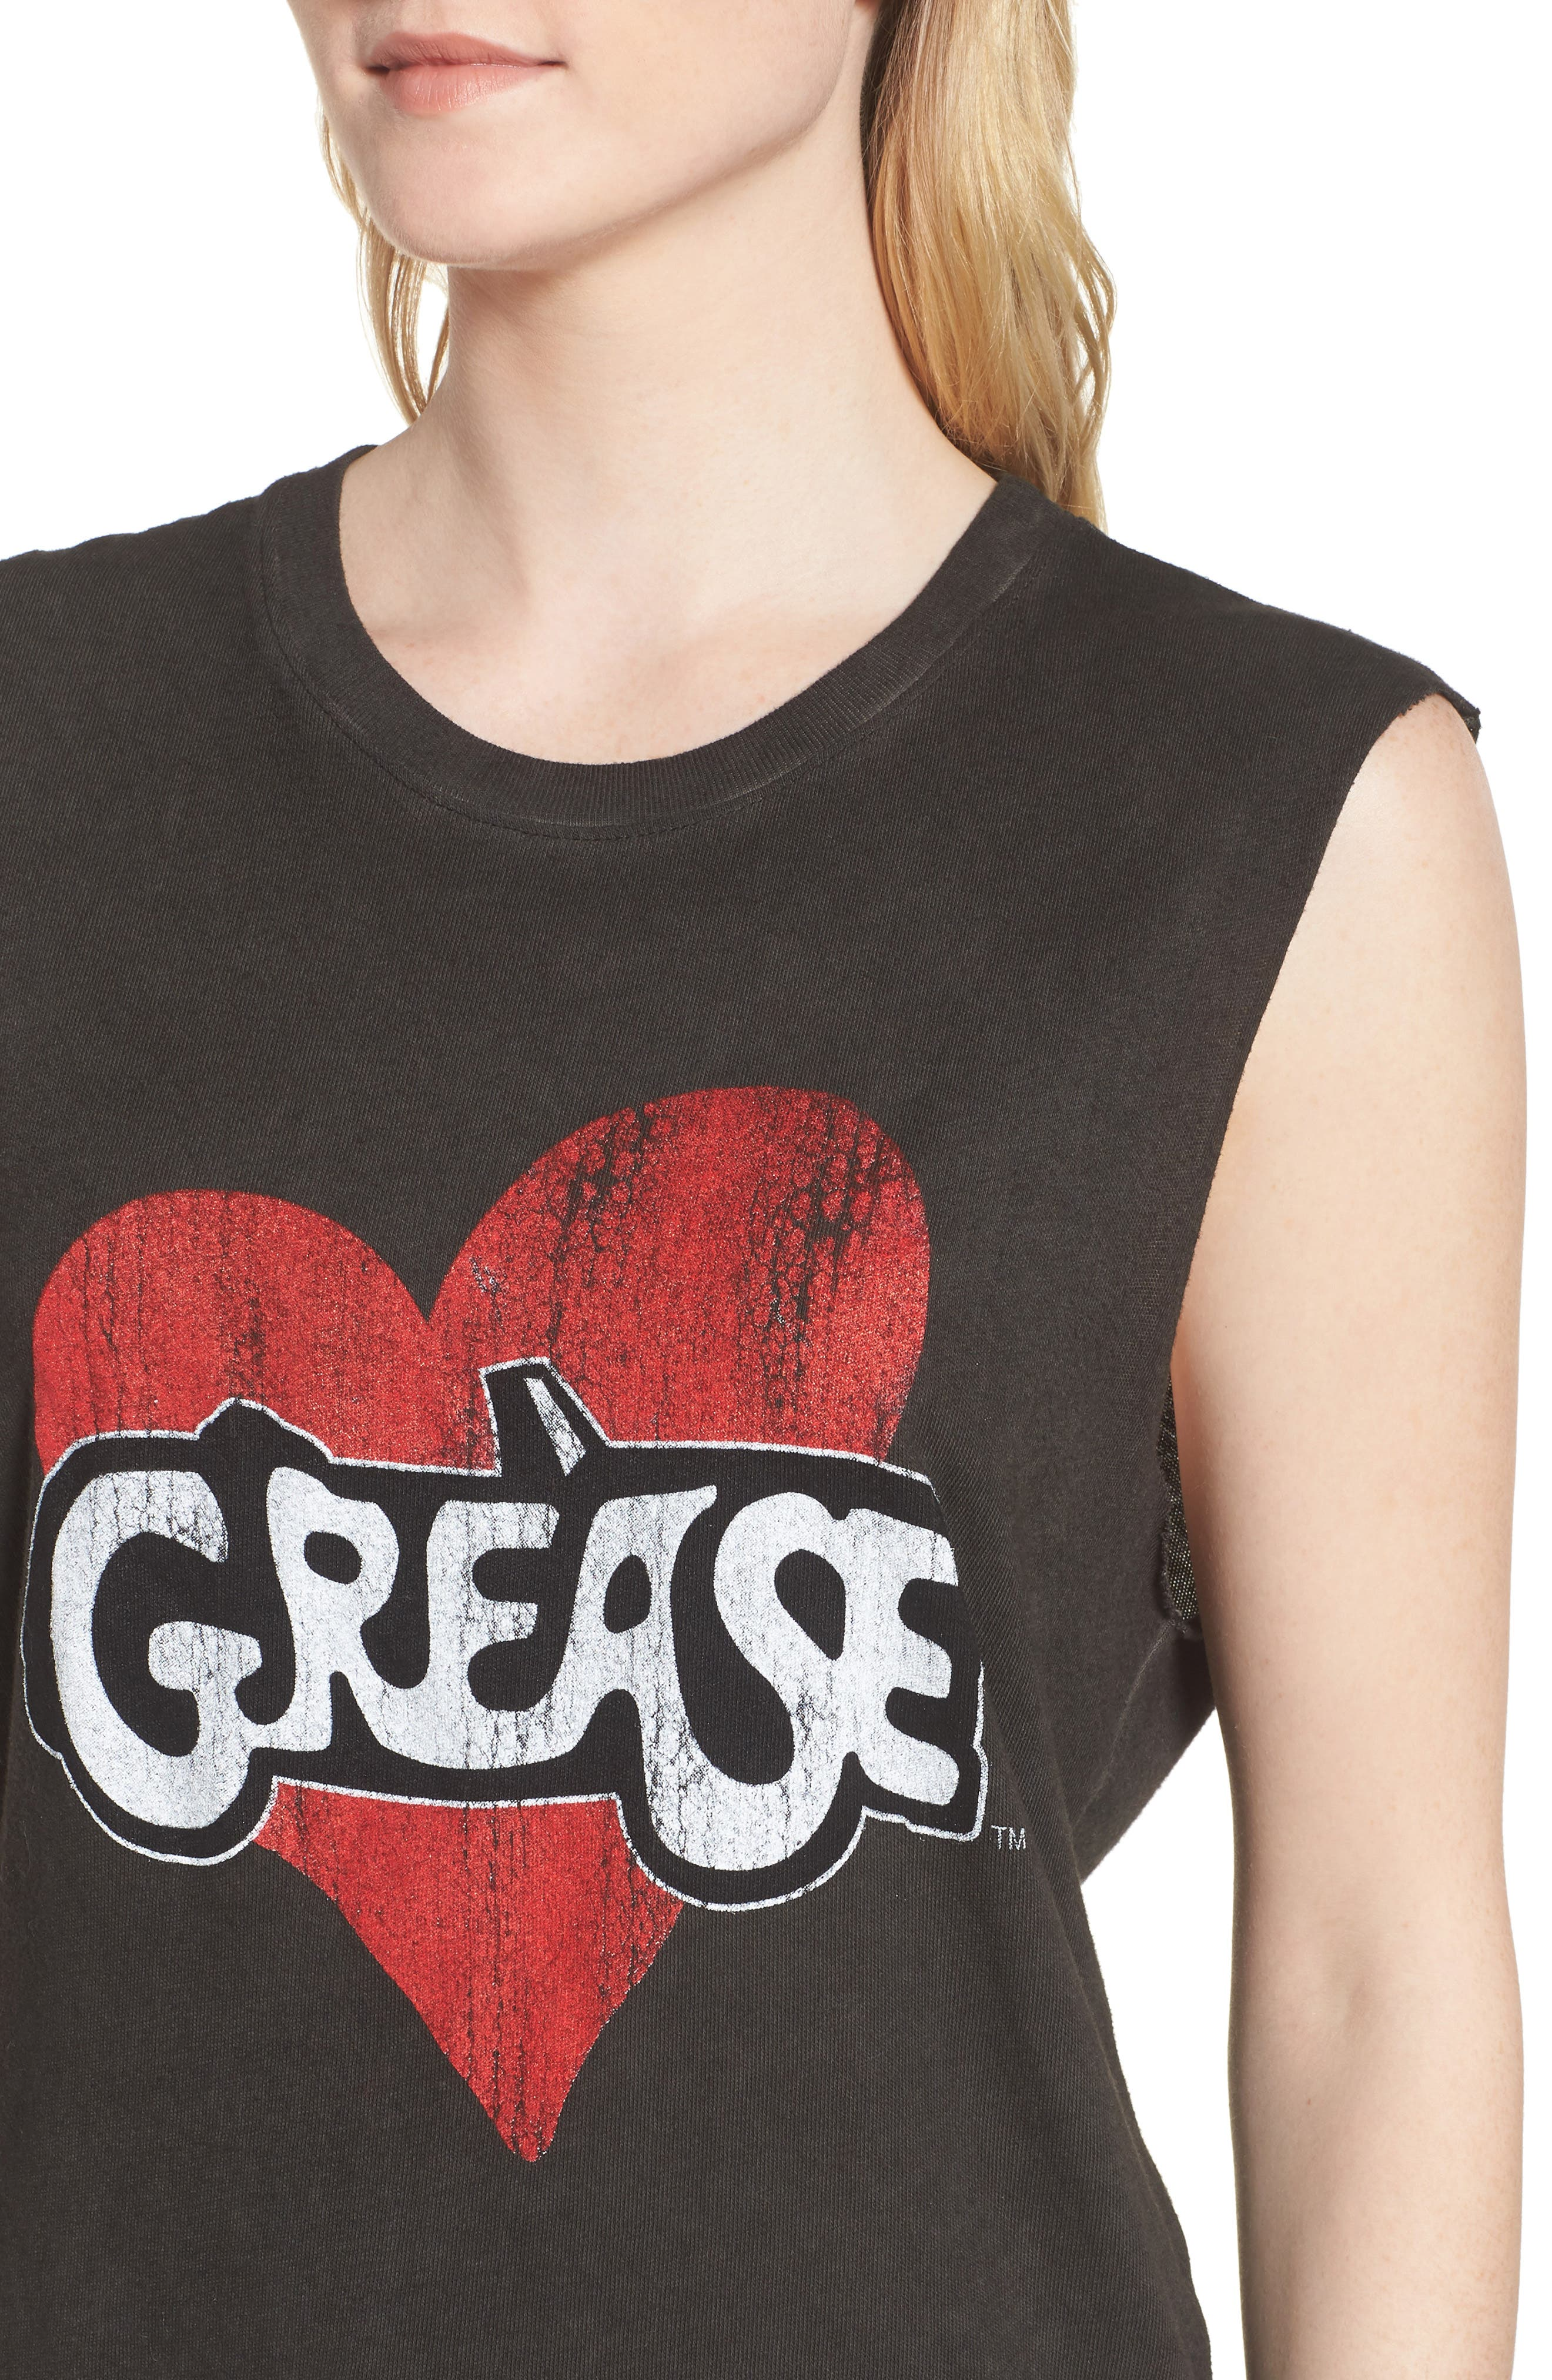 x Grease Muscle Tee,                             Alternate thumbnail 4, color,                             001